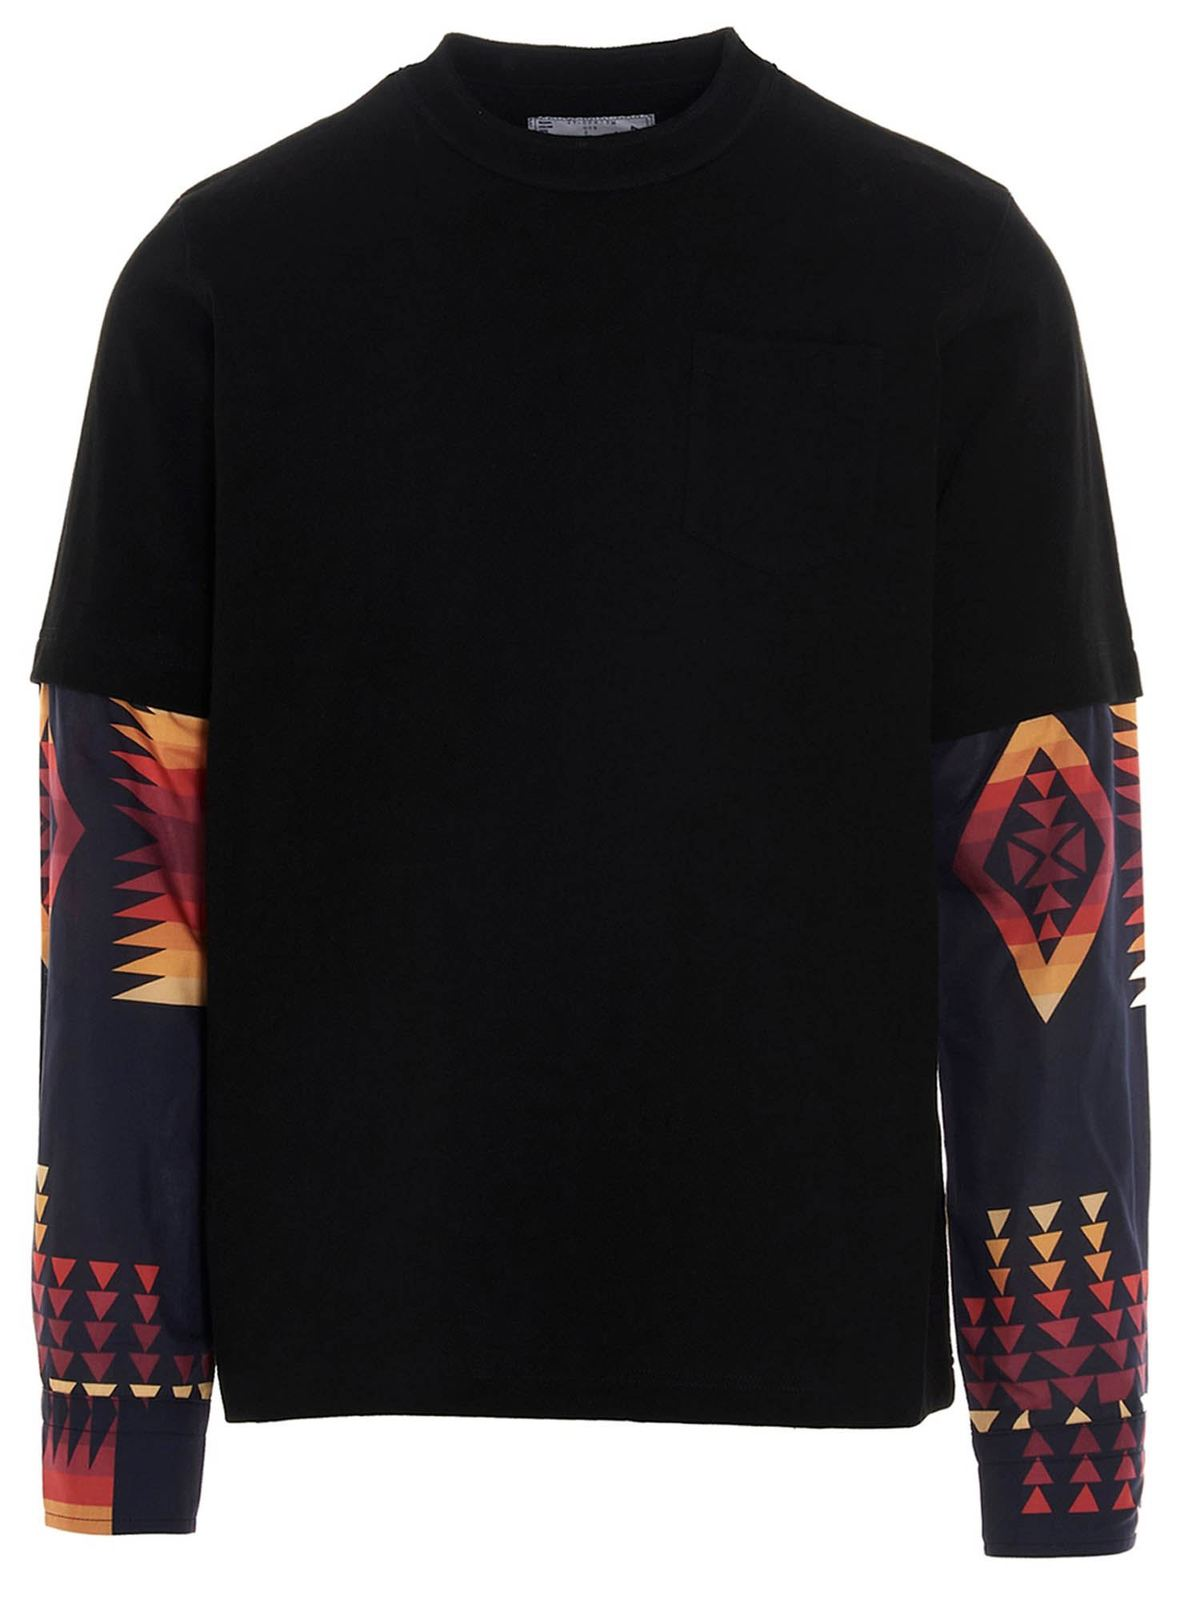 Sacai Cottons MULTICOLOR INSERTS T-SHIRT IN BLACK